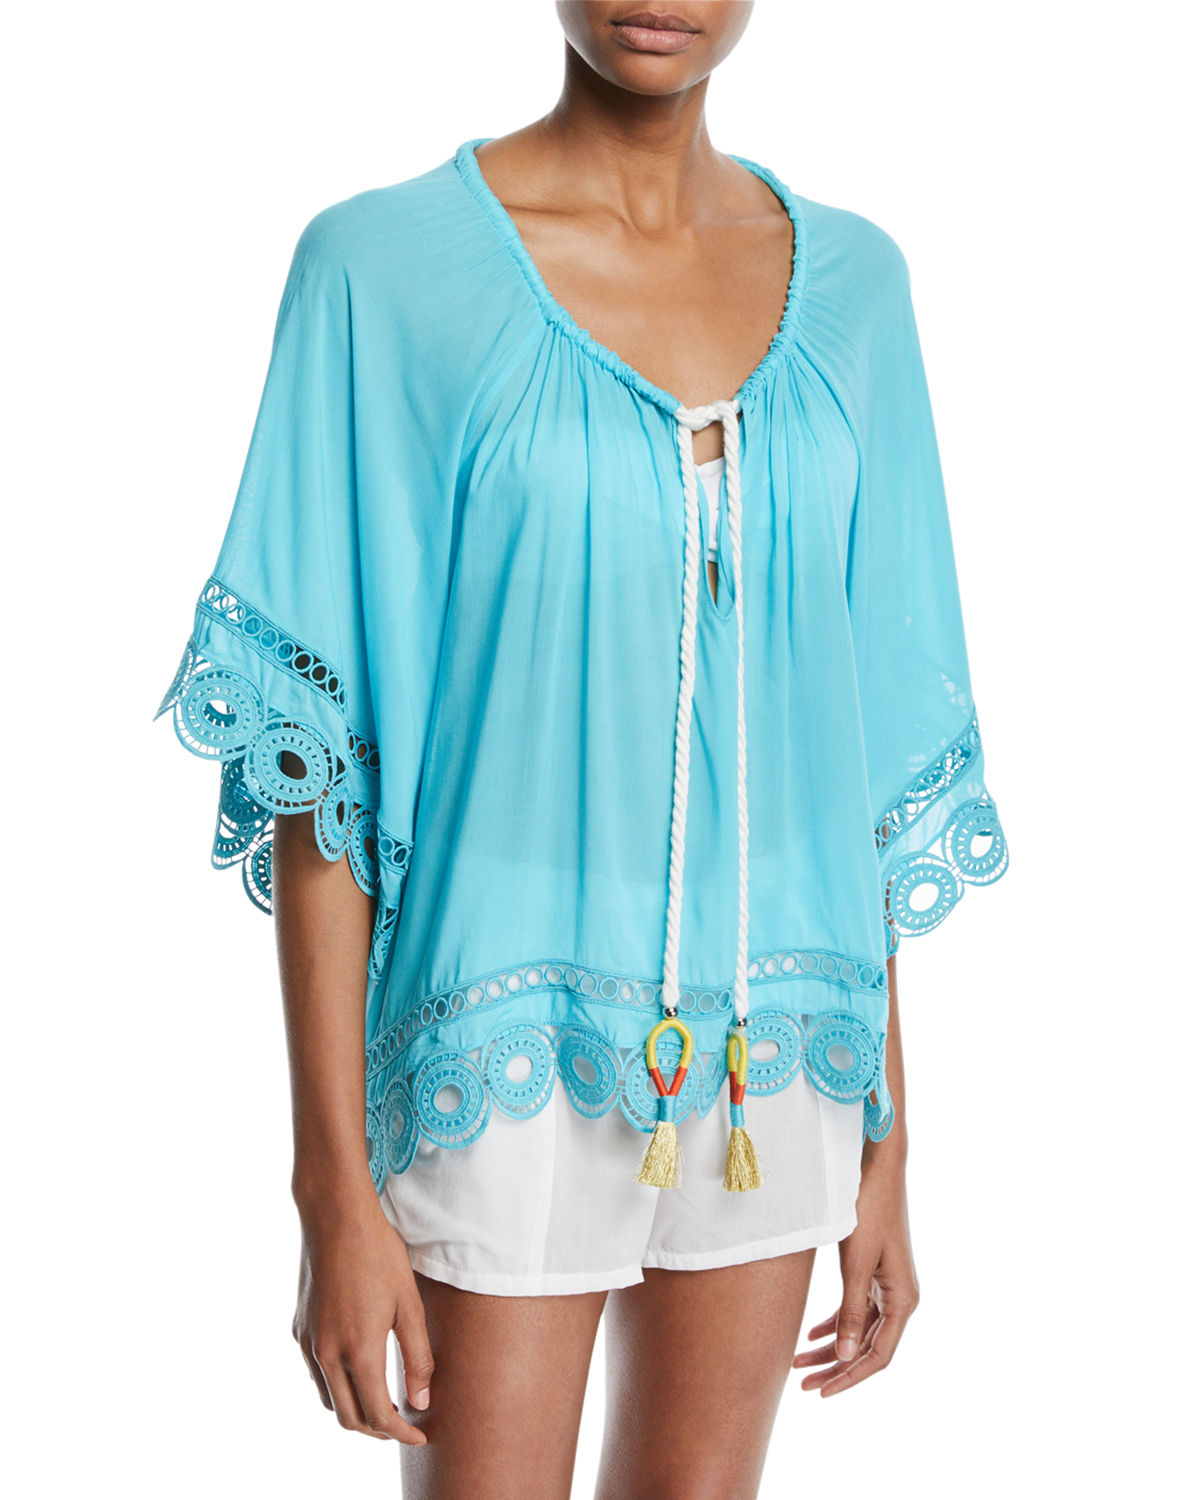 Ramy Brook Tops DIMITRI TIE-FRONT EMBROIDERED TUNIC